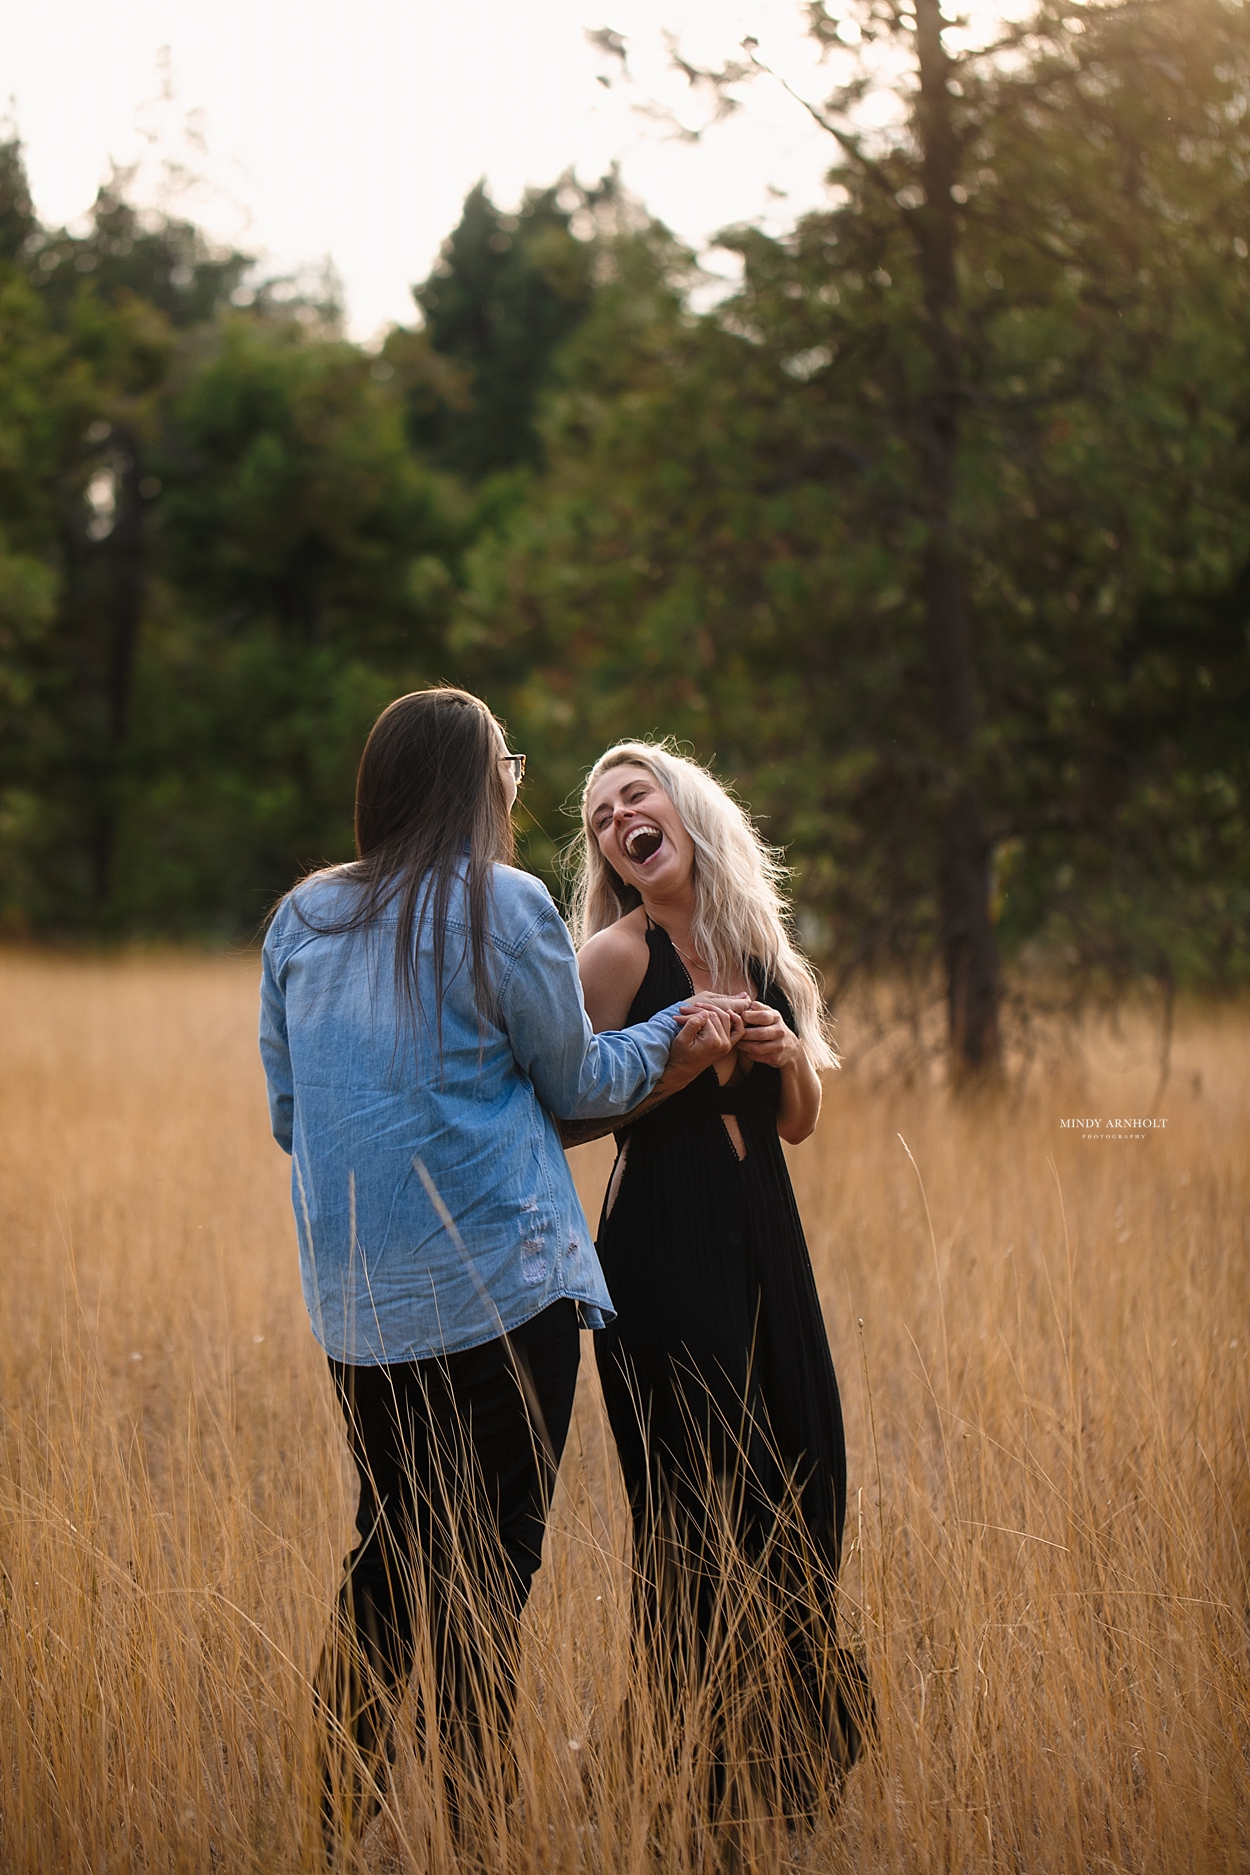 LGBTQ Couples session - Cute lesbian couple dancing in a field - Spokane Couple's Photographer